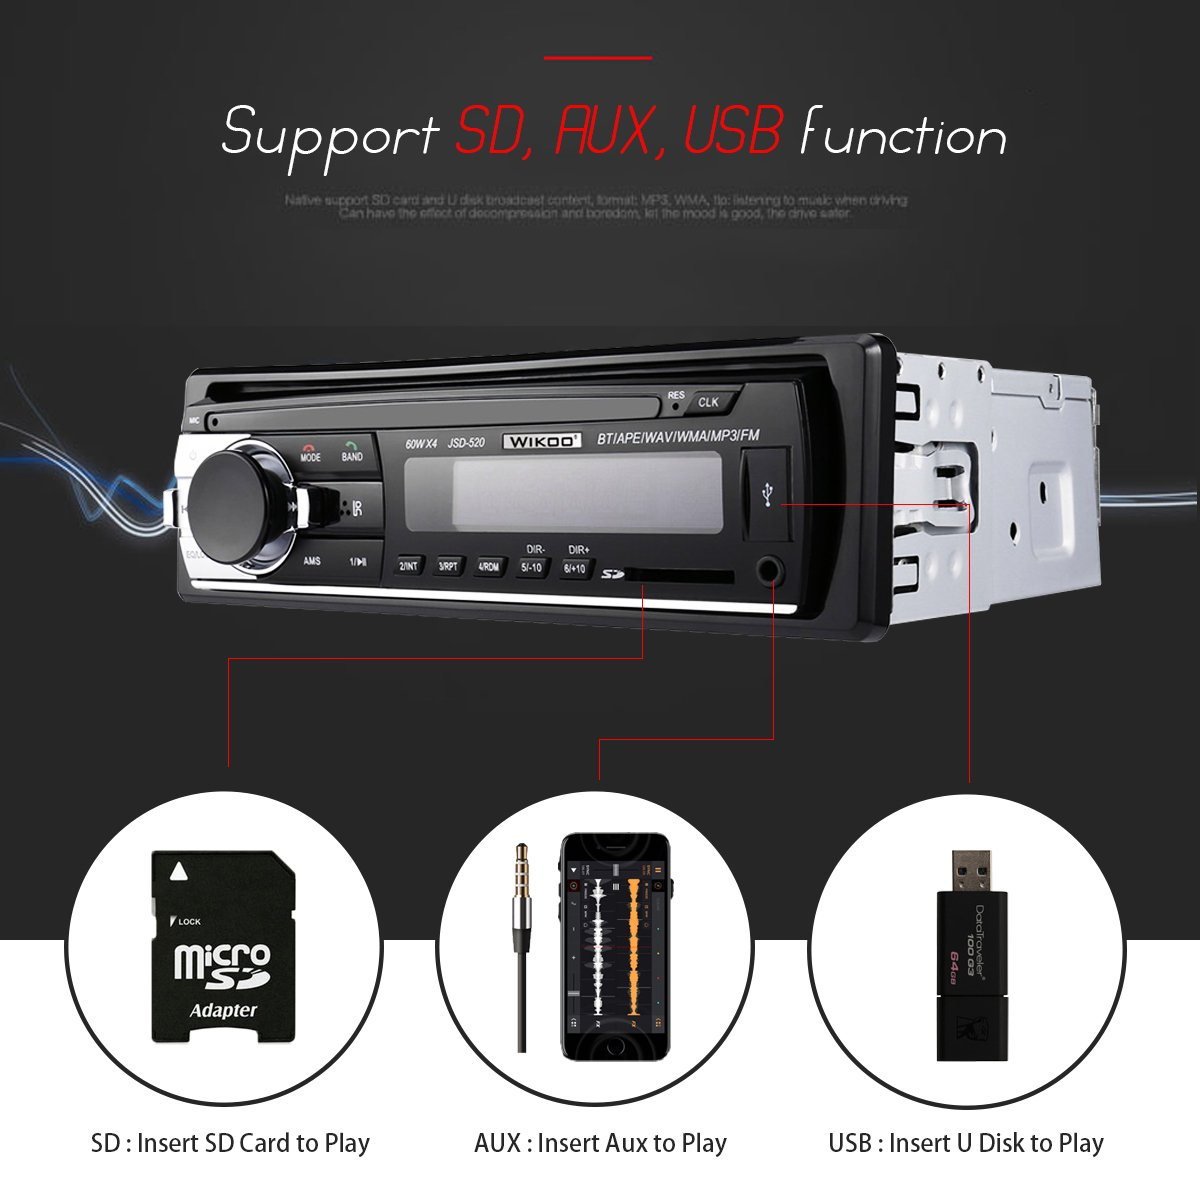 Digital Car Stereo - Wikoo Single-Din Bluetooth Car Stereo In Dash with Remote Control - Receivers USB/SD/Audio - MP3 Player/FM Radio, Supports Hands Free Calling by Wikoo (Image #3)